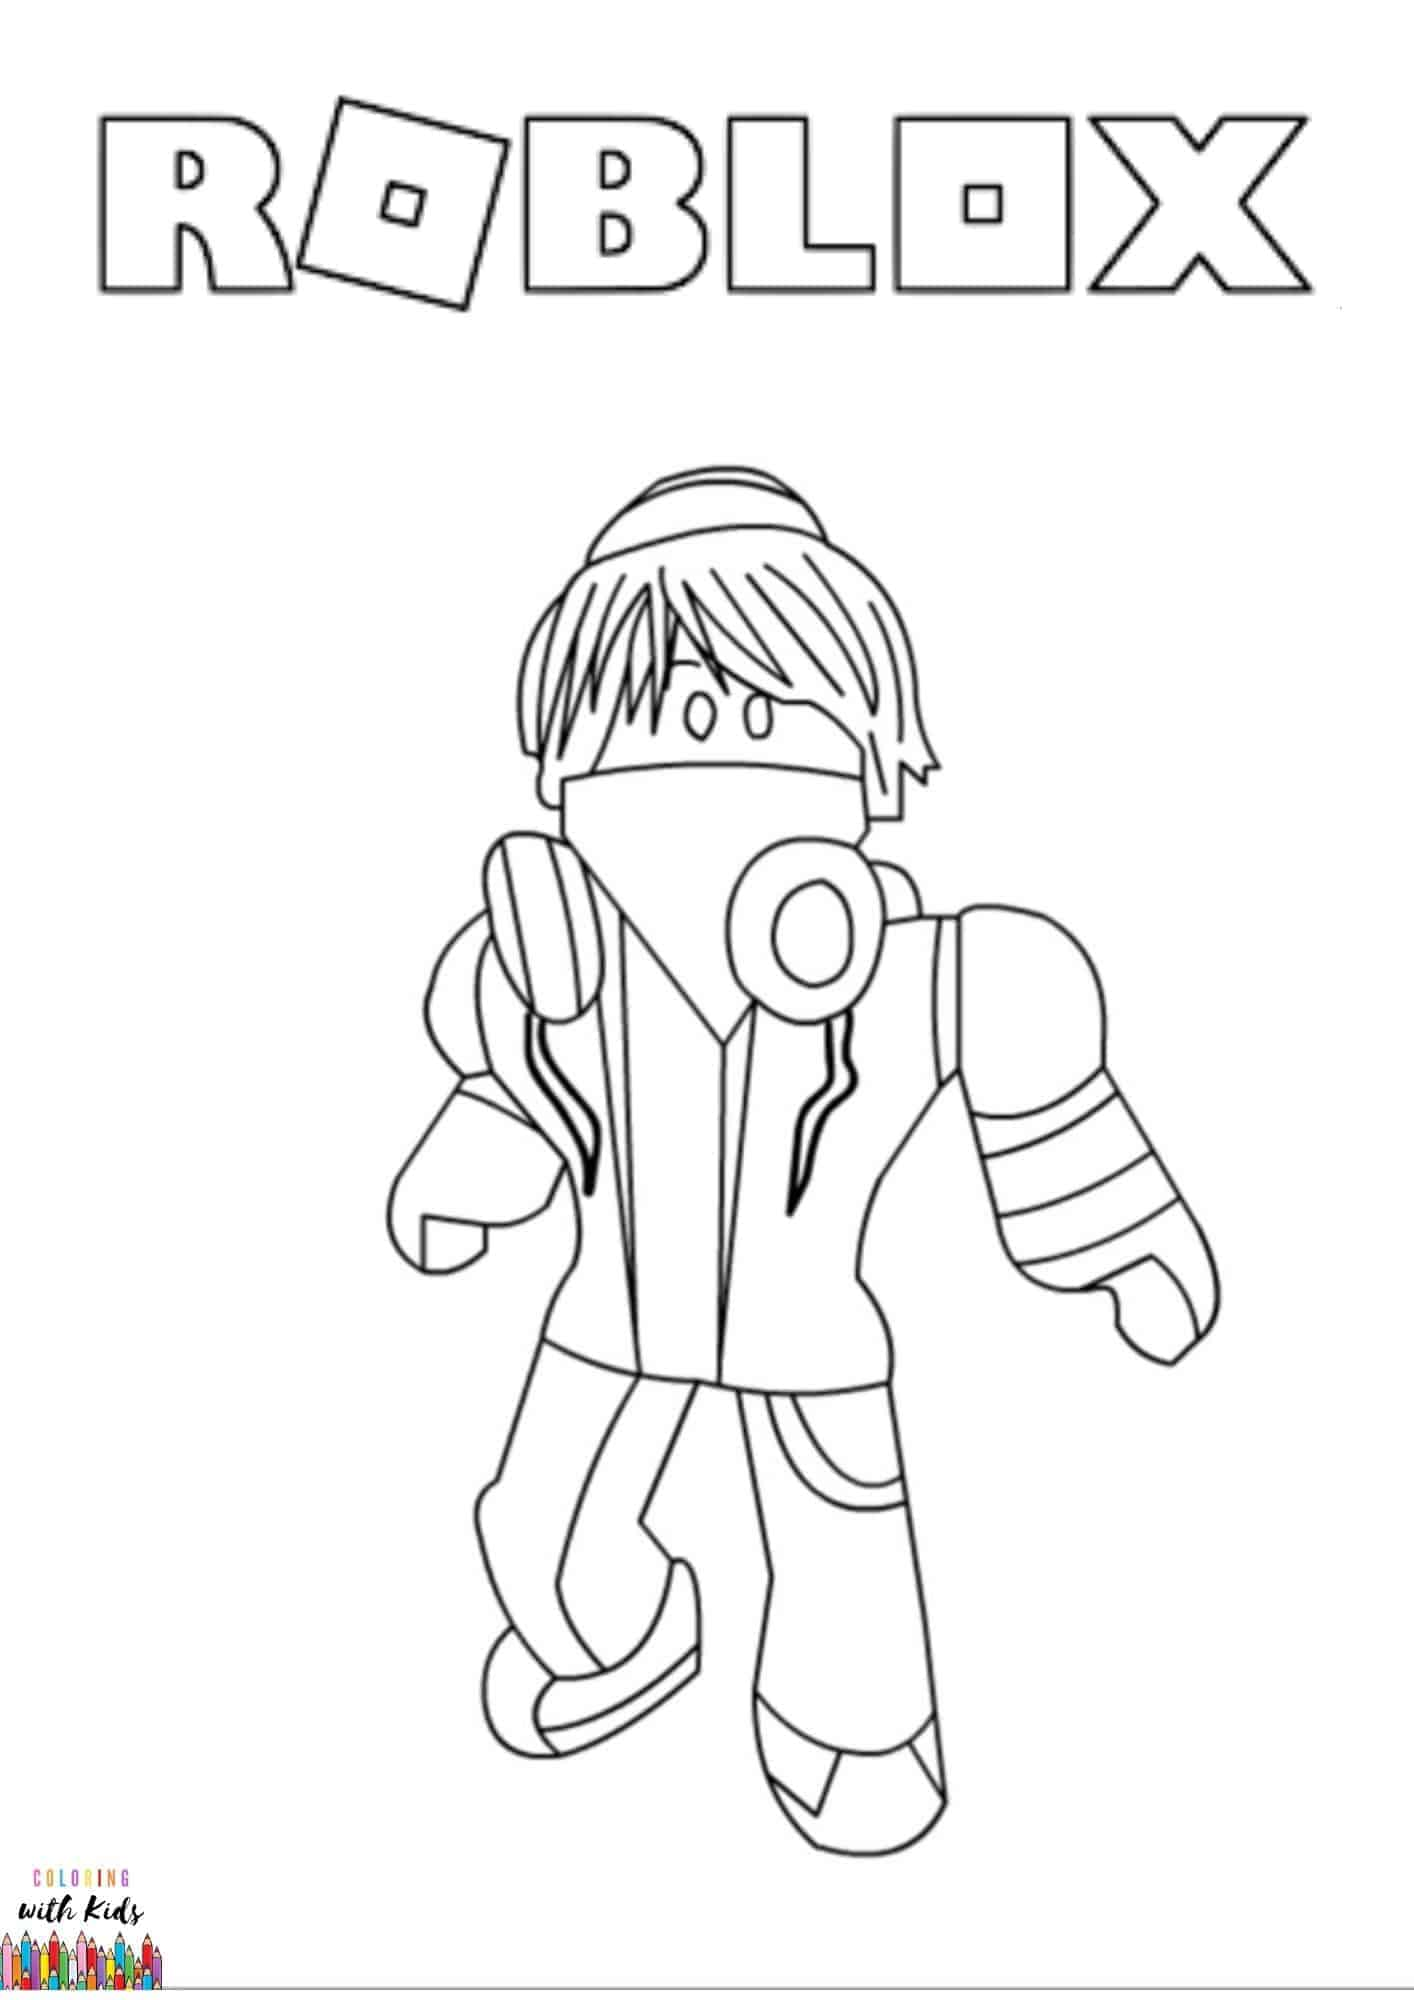 Roblox Avatar Coloring Page Coloringwithkids Com